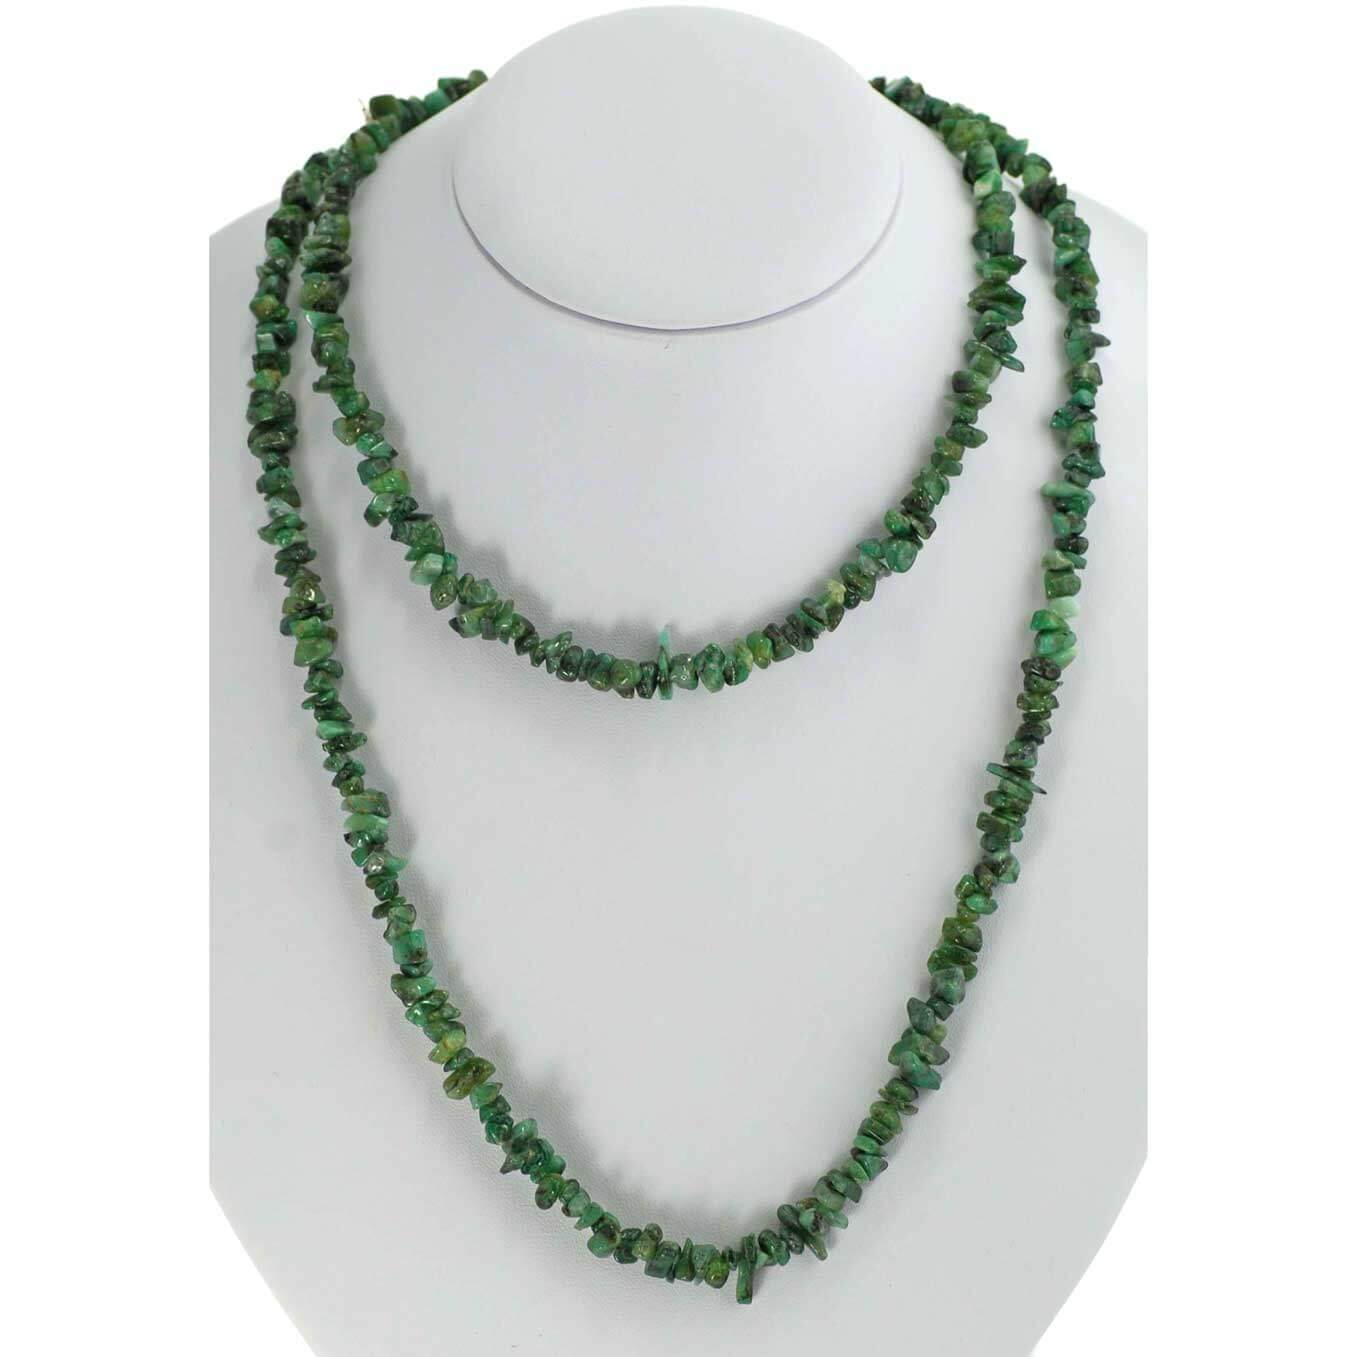 Emerald Chipped Necklace